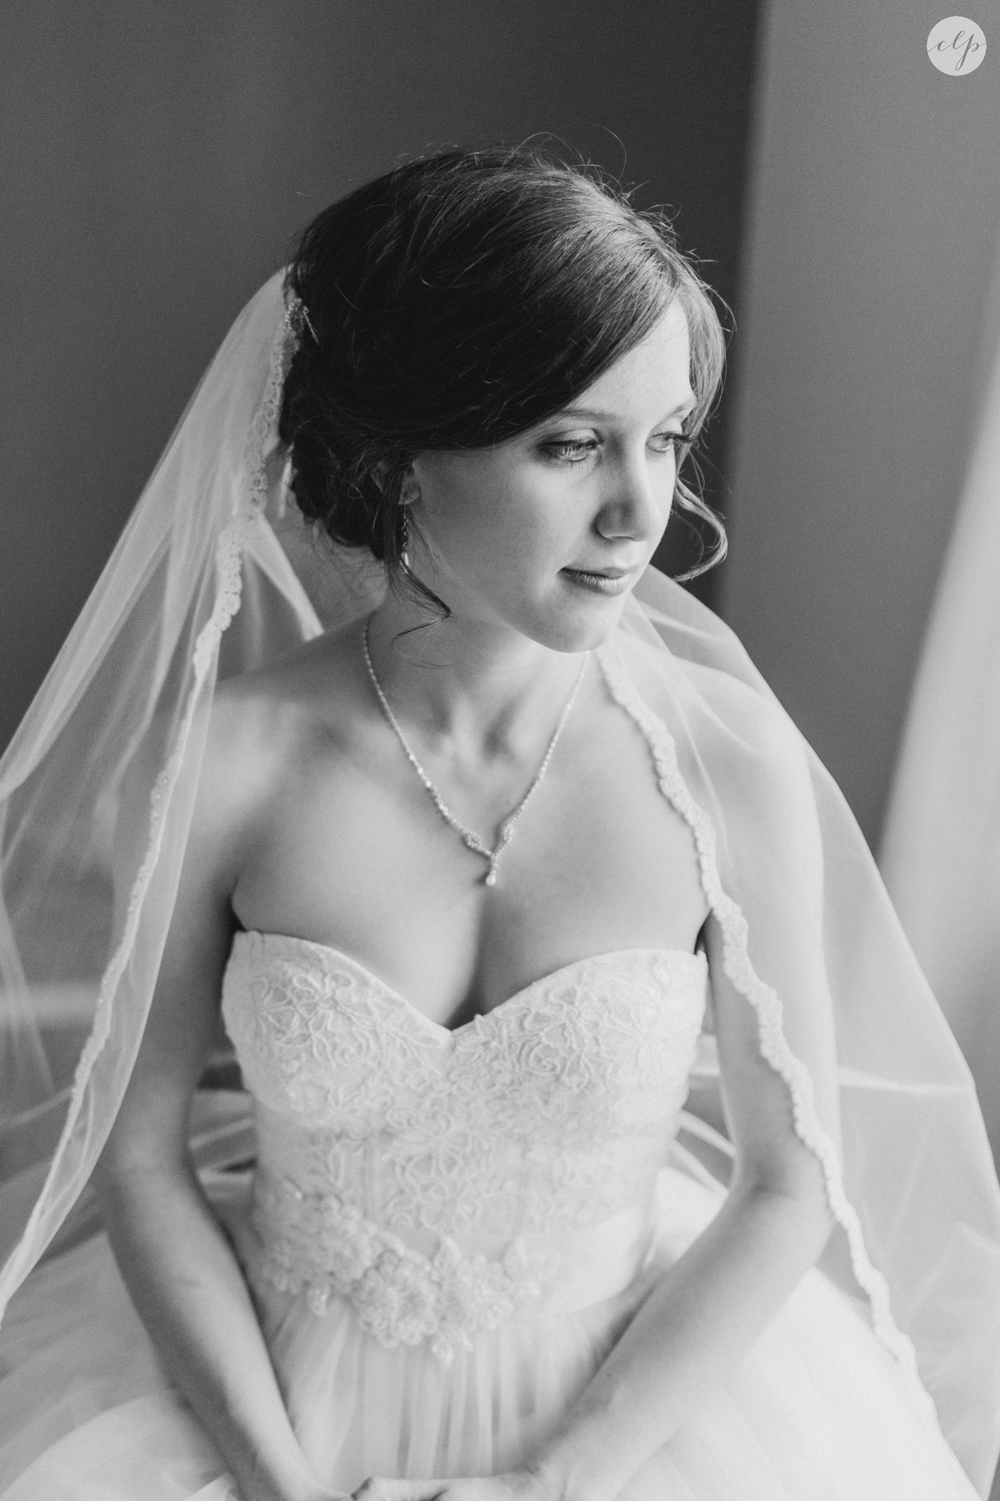 st-louis-missouri-wedding-photographer_5774.jpg